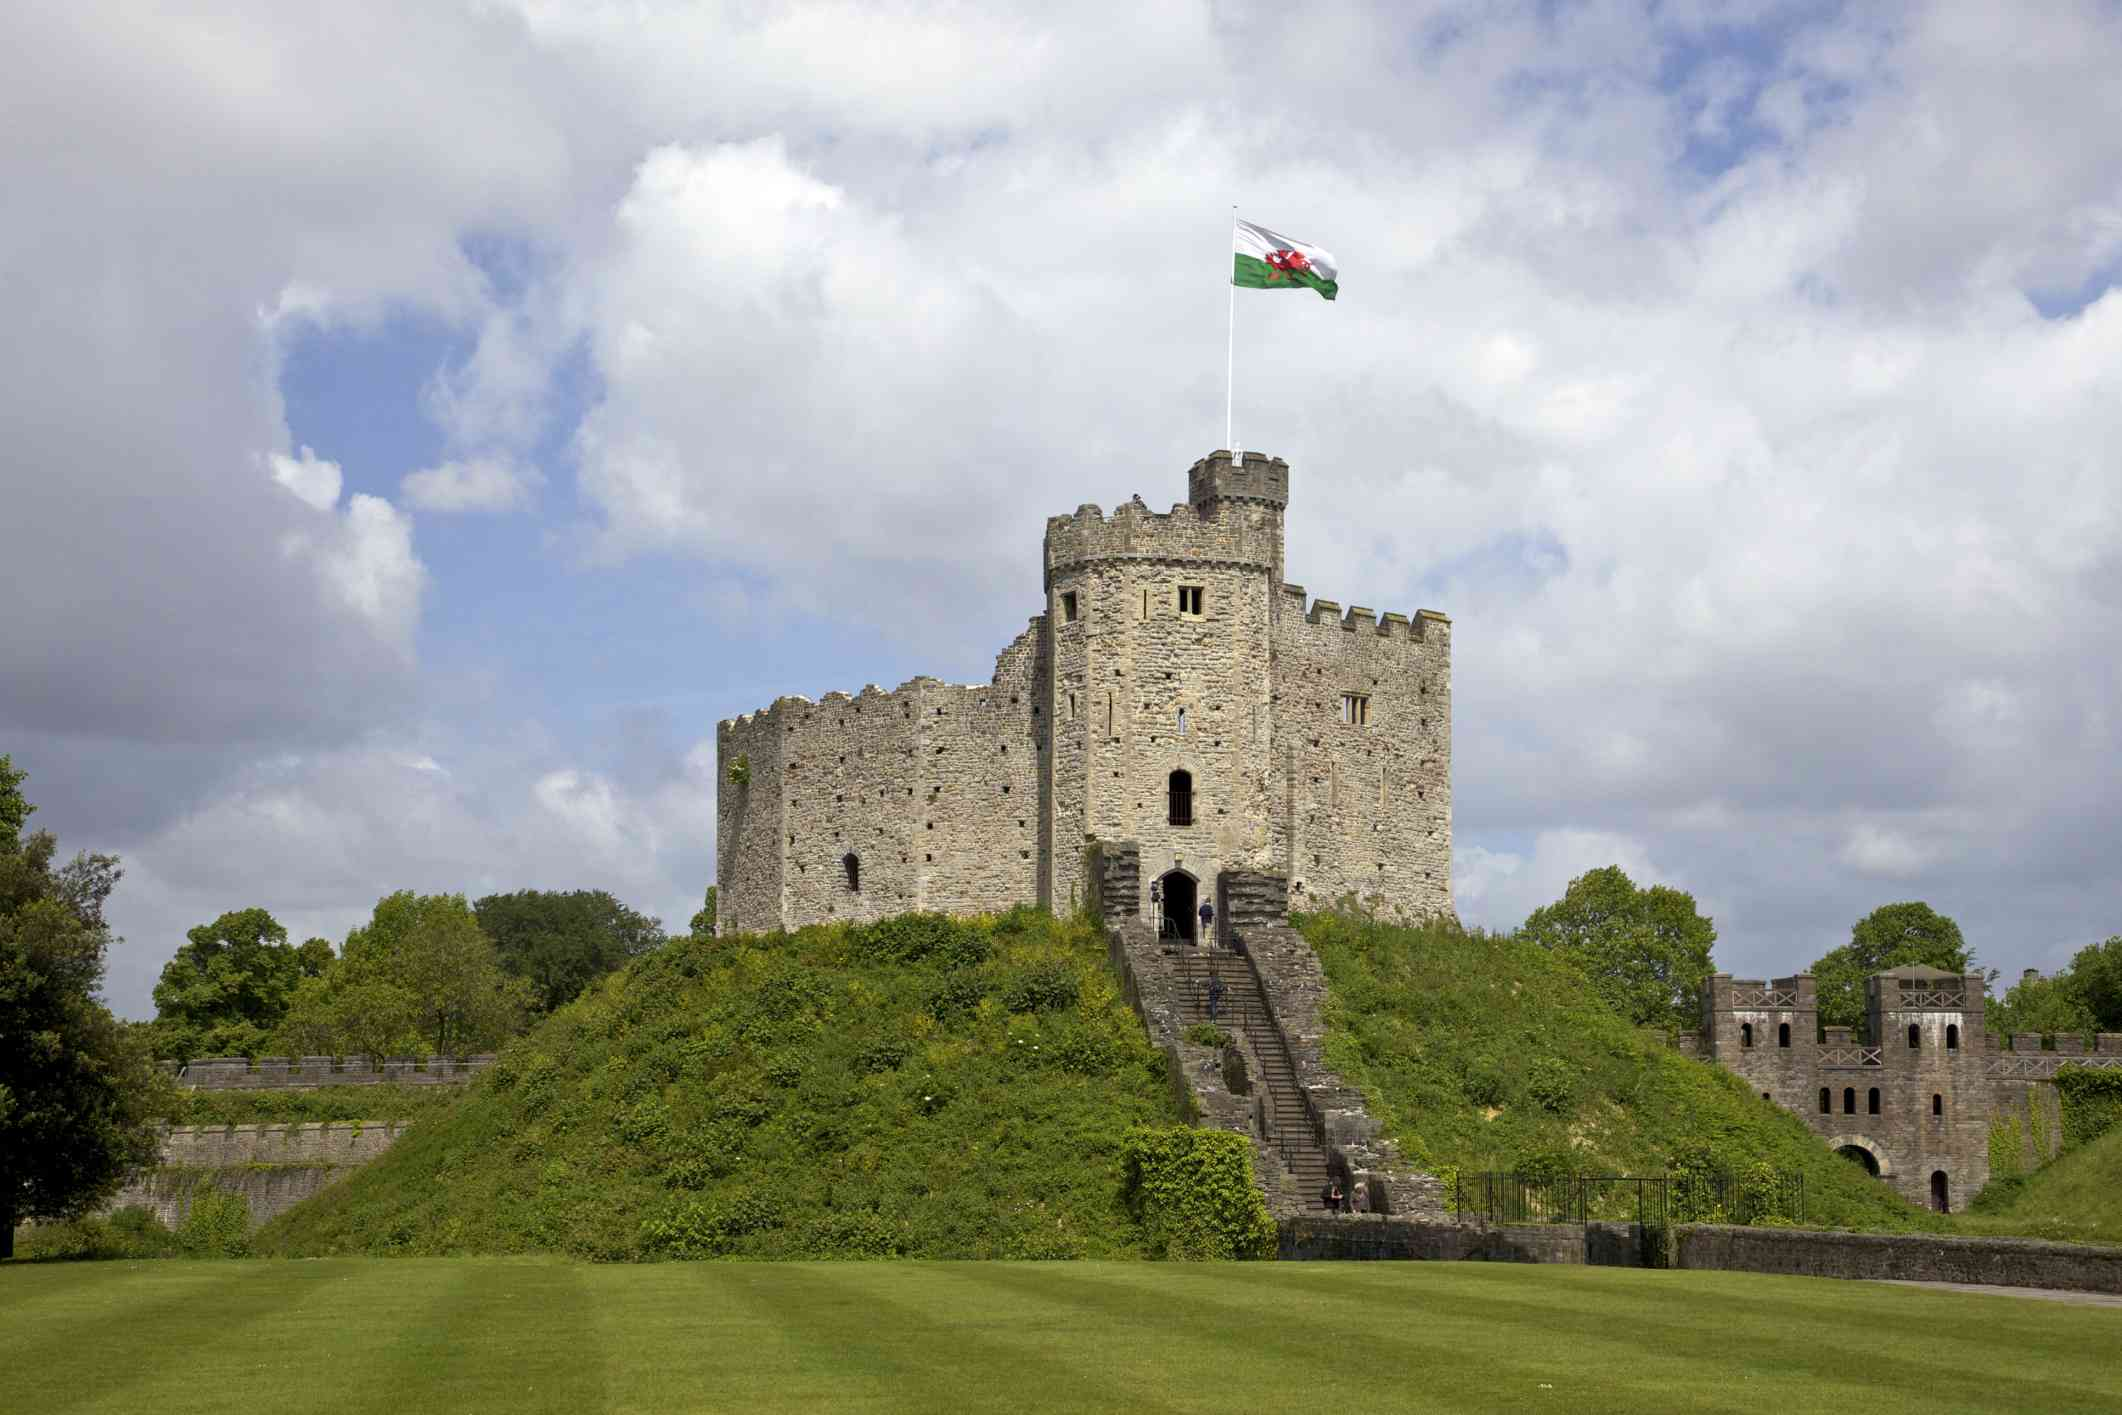 Cardiff Castle on top of a small green hill on a cloudy day